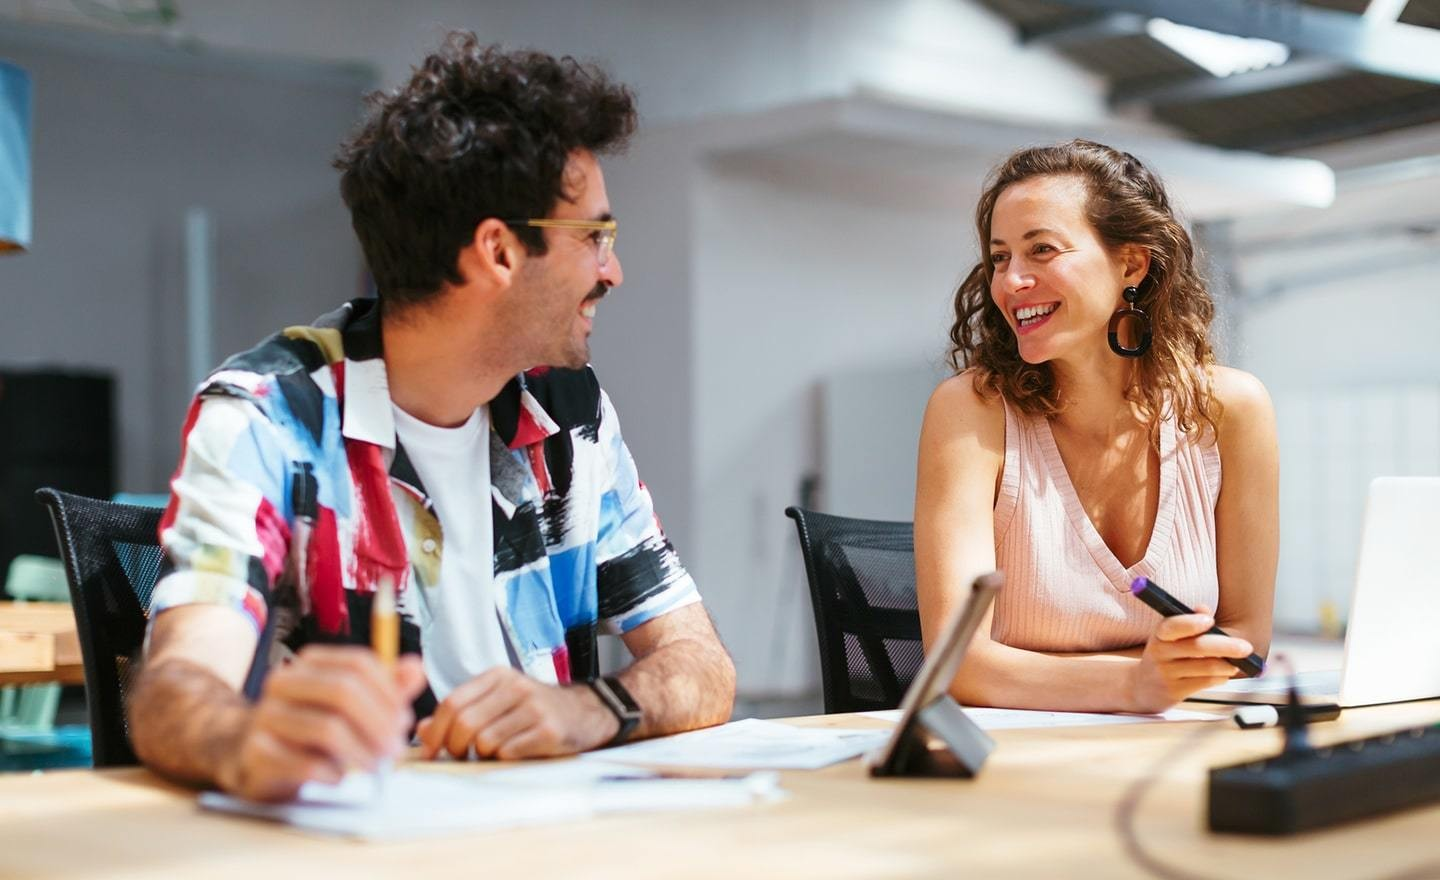 Two people smiling and talking seated at a desk